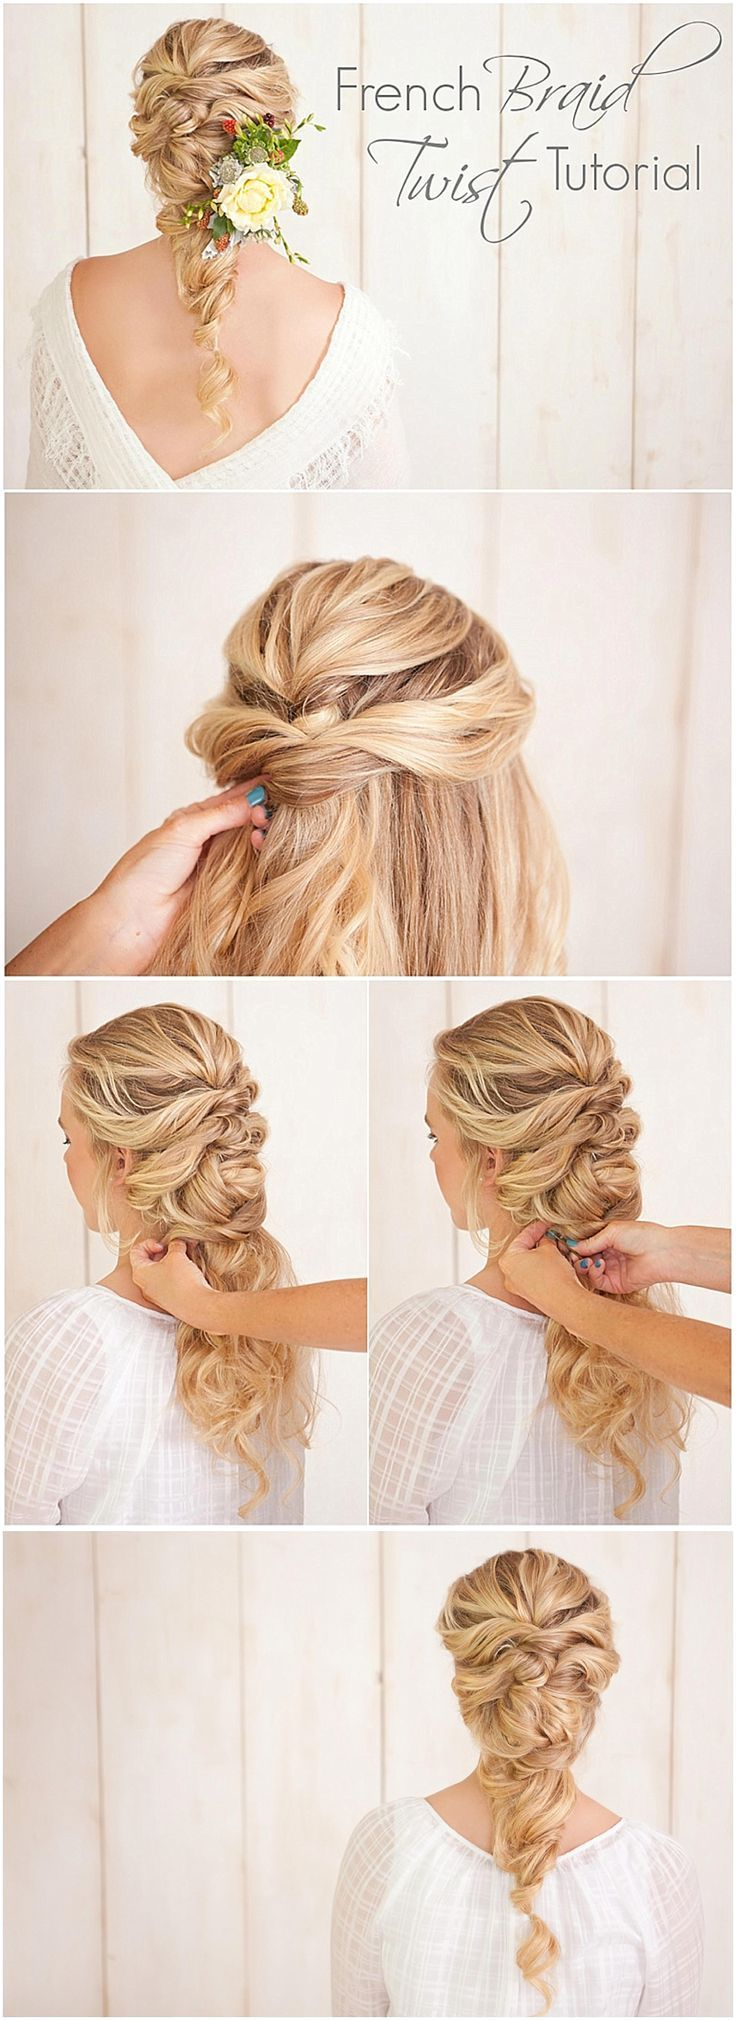 Super easy diy braided hairstyles for wedding tutorials french